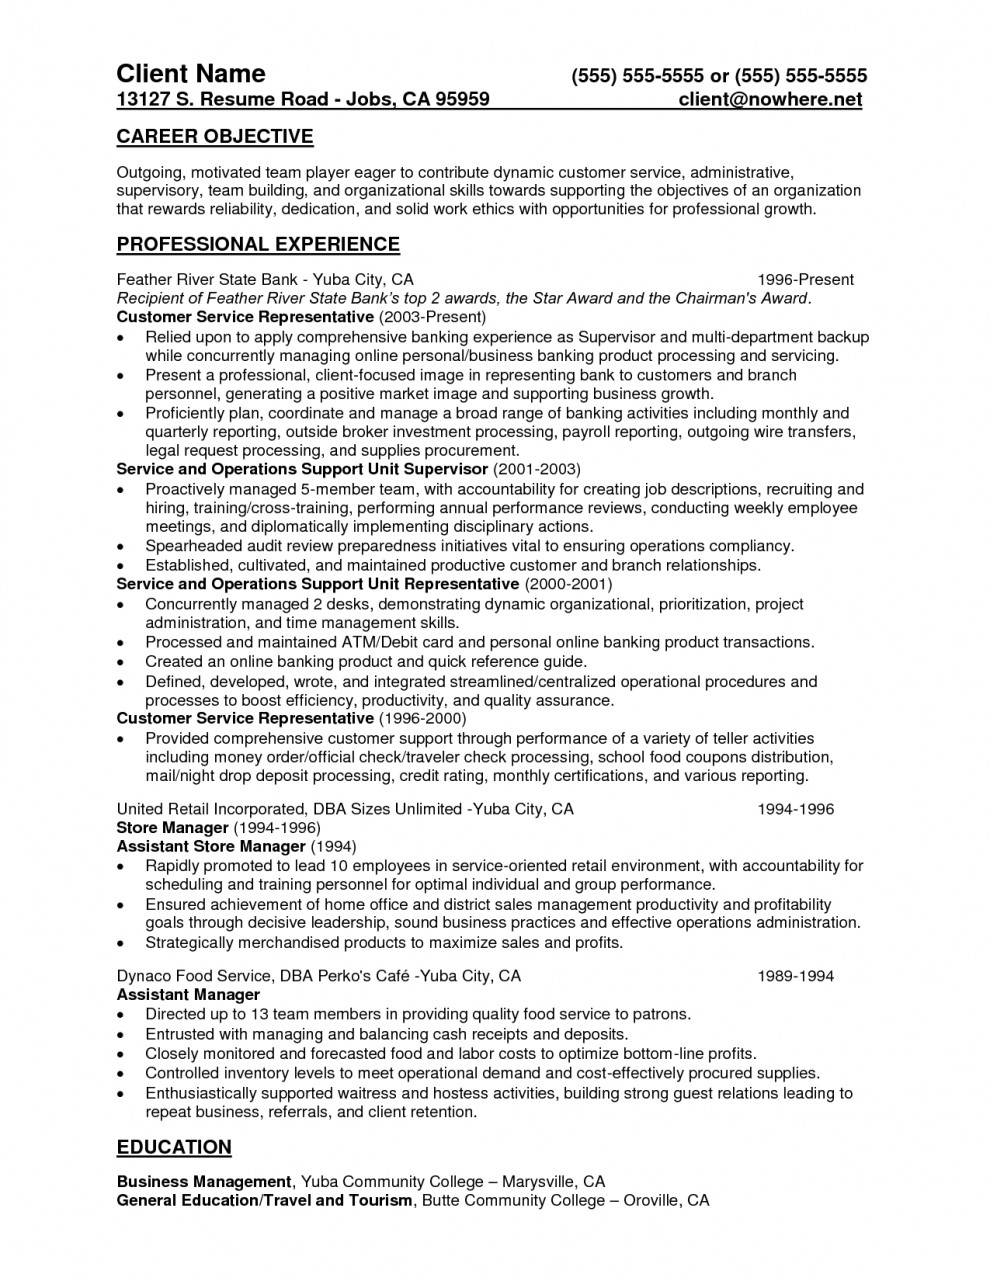 Bank Teller Responsibilities for Resume - Bank Teller Responsibilities for Resume New Teller Resume Pdf Resume